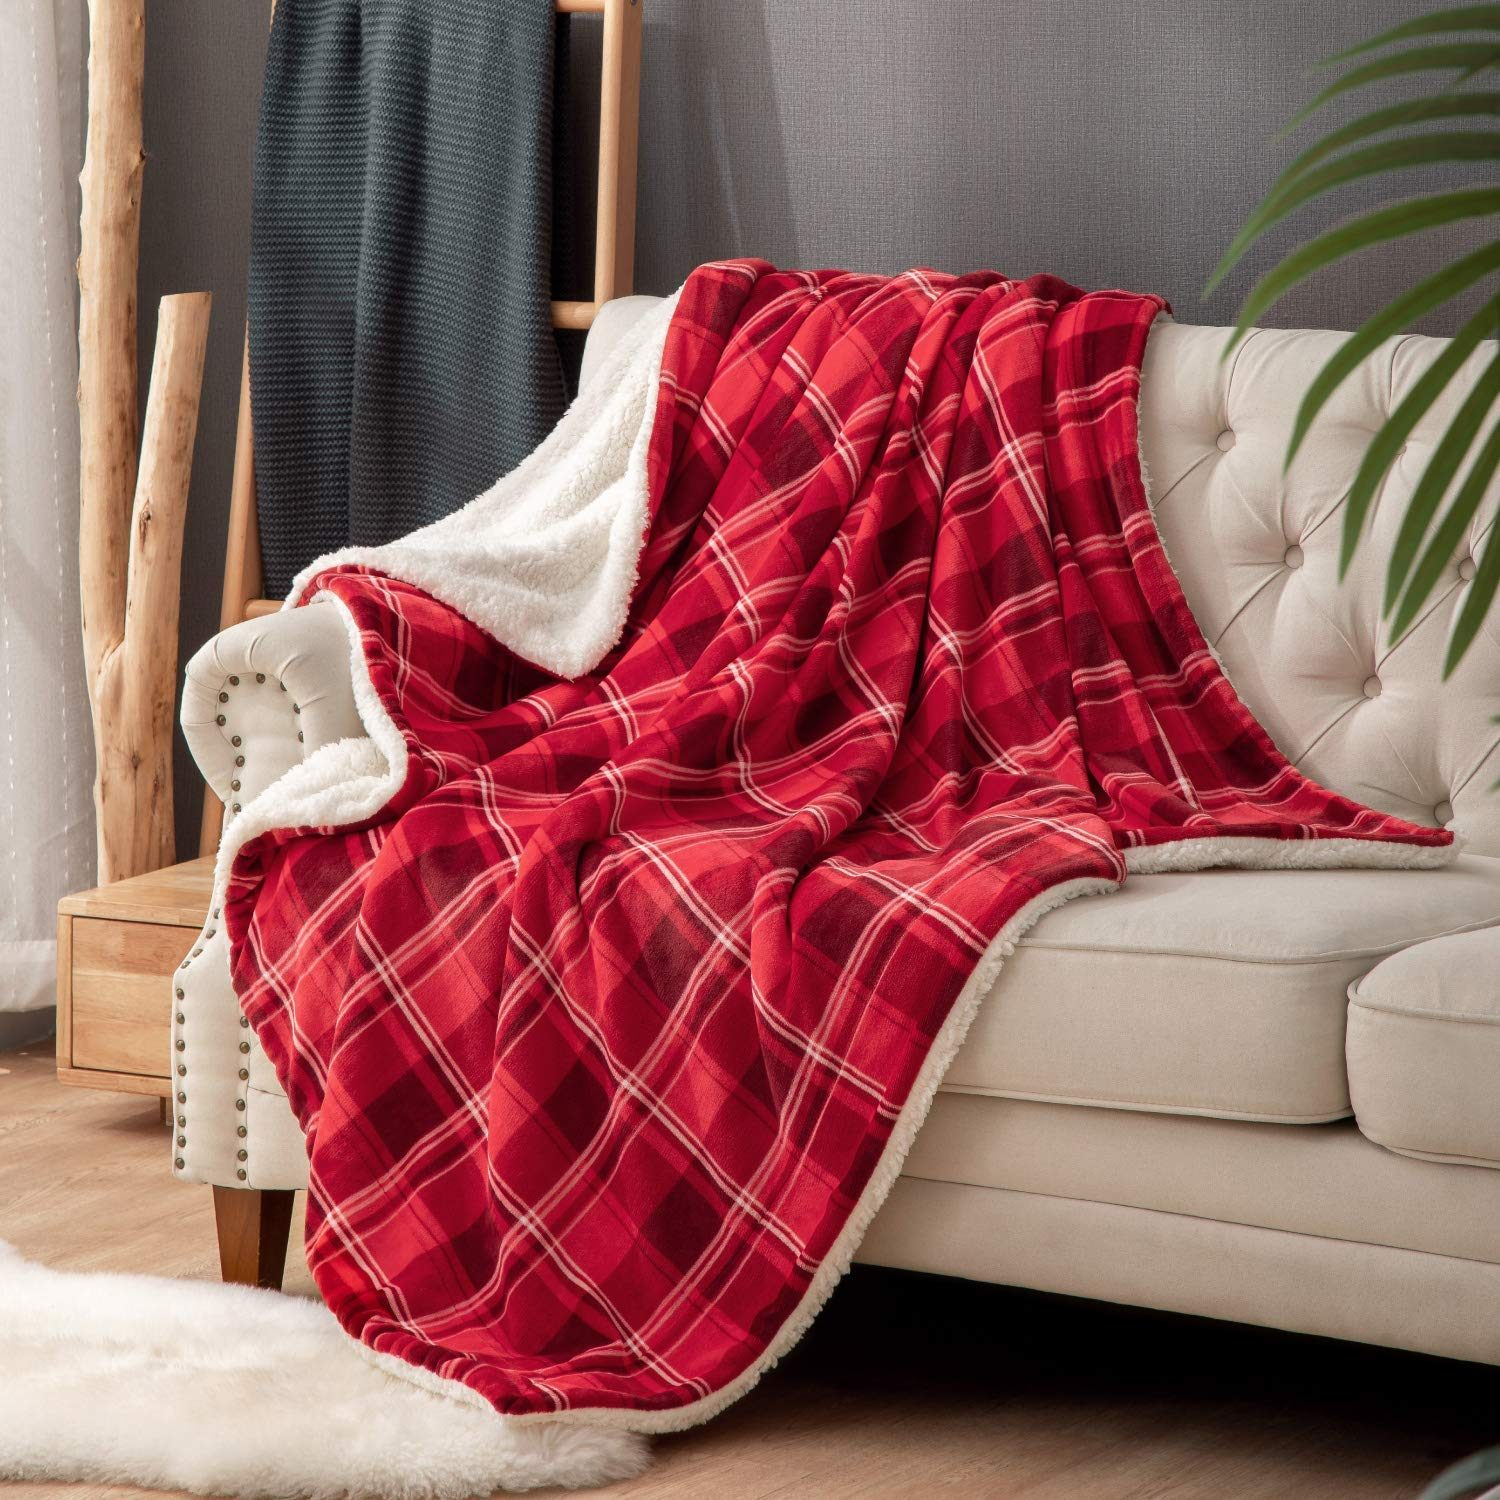 Sherpa Fleece Plaid Blanket